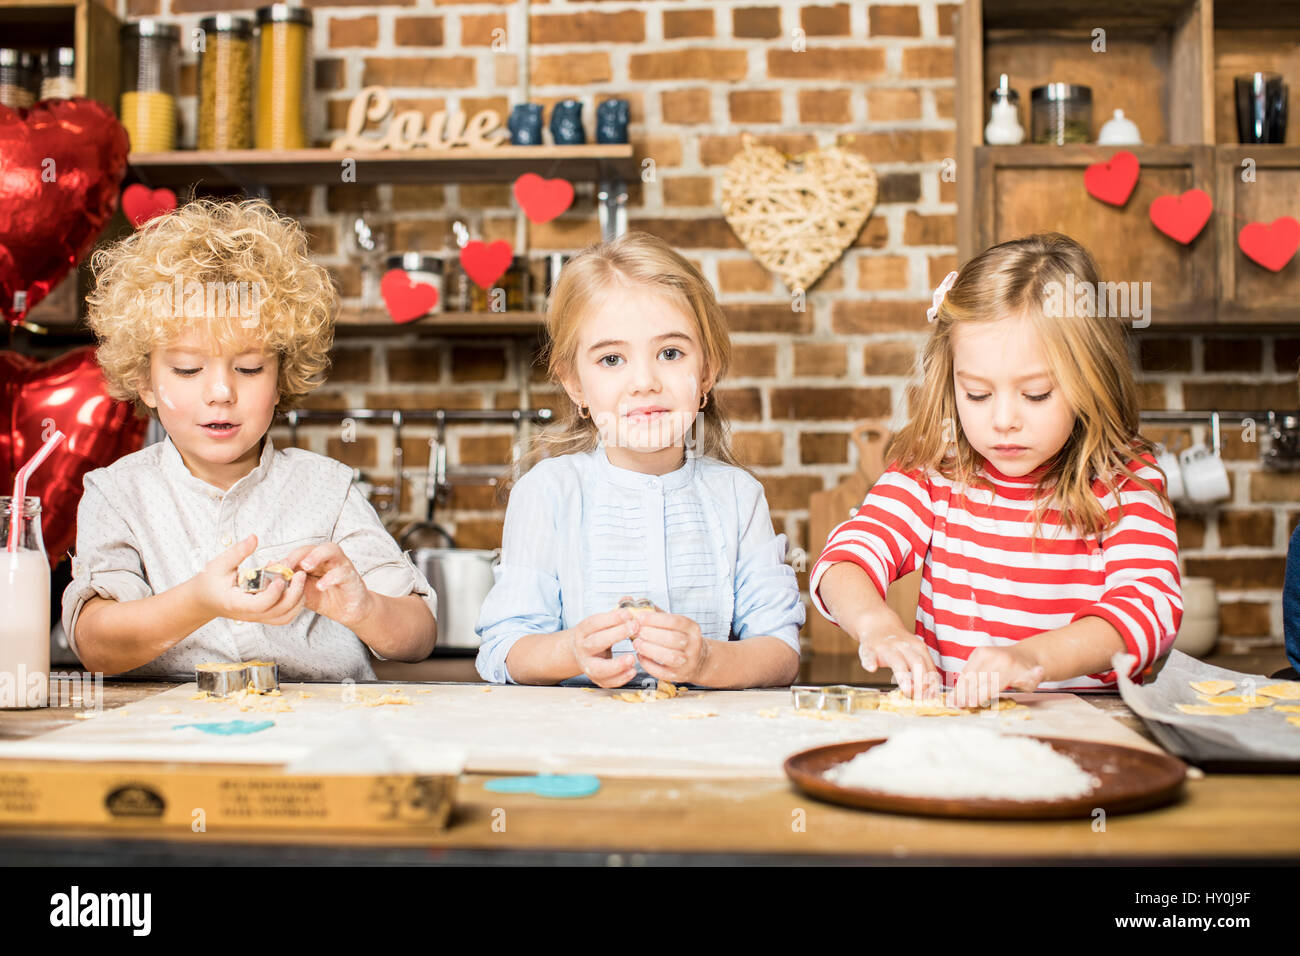 Three adorable little children cooking biscuits from unbaked dough - Stock Image